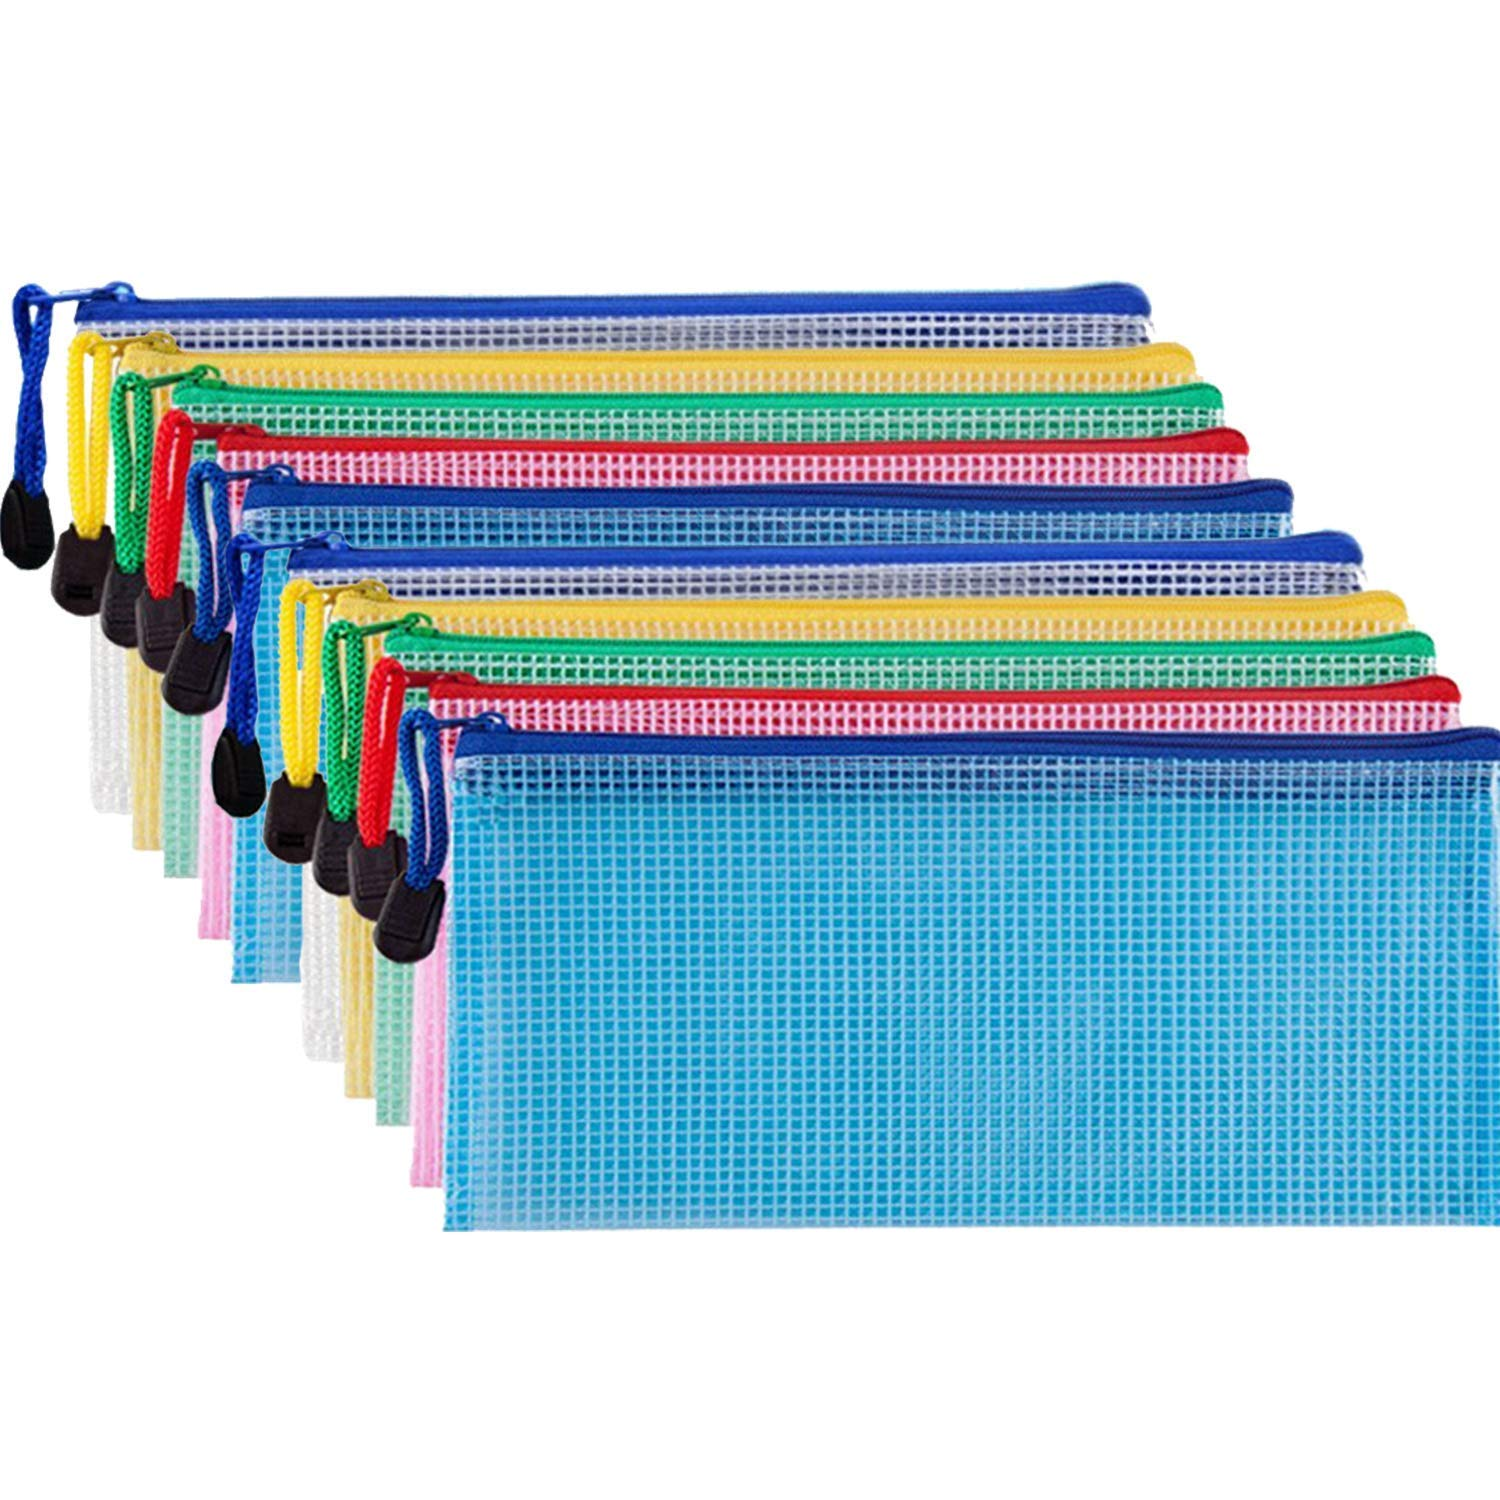 10 Pieces Zipper File Pouch Grid Document Bag Multipurpose Storage Pouch Bags For Offices Supplies Travel Accessories,5 Colors